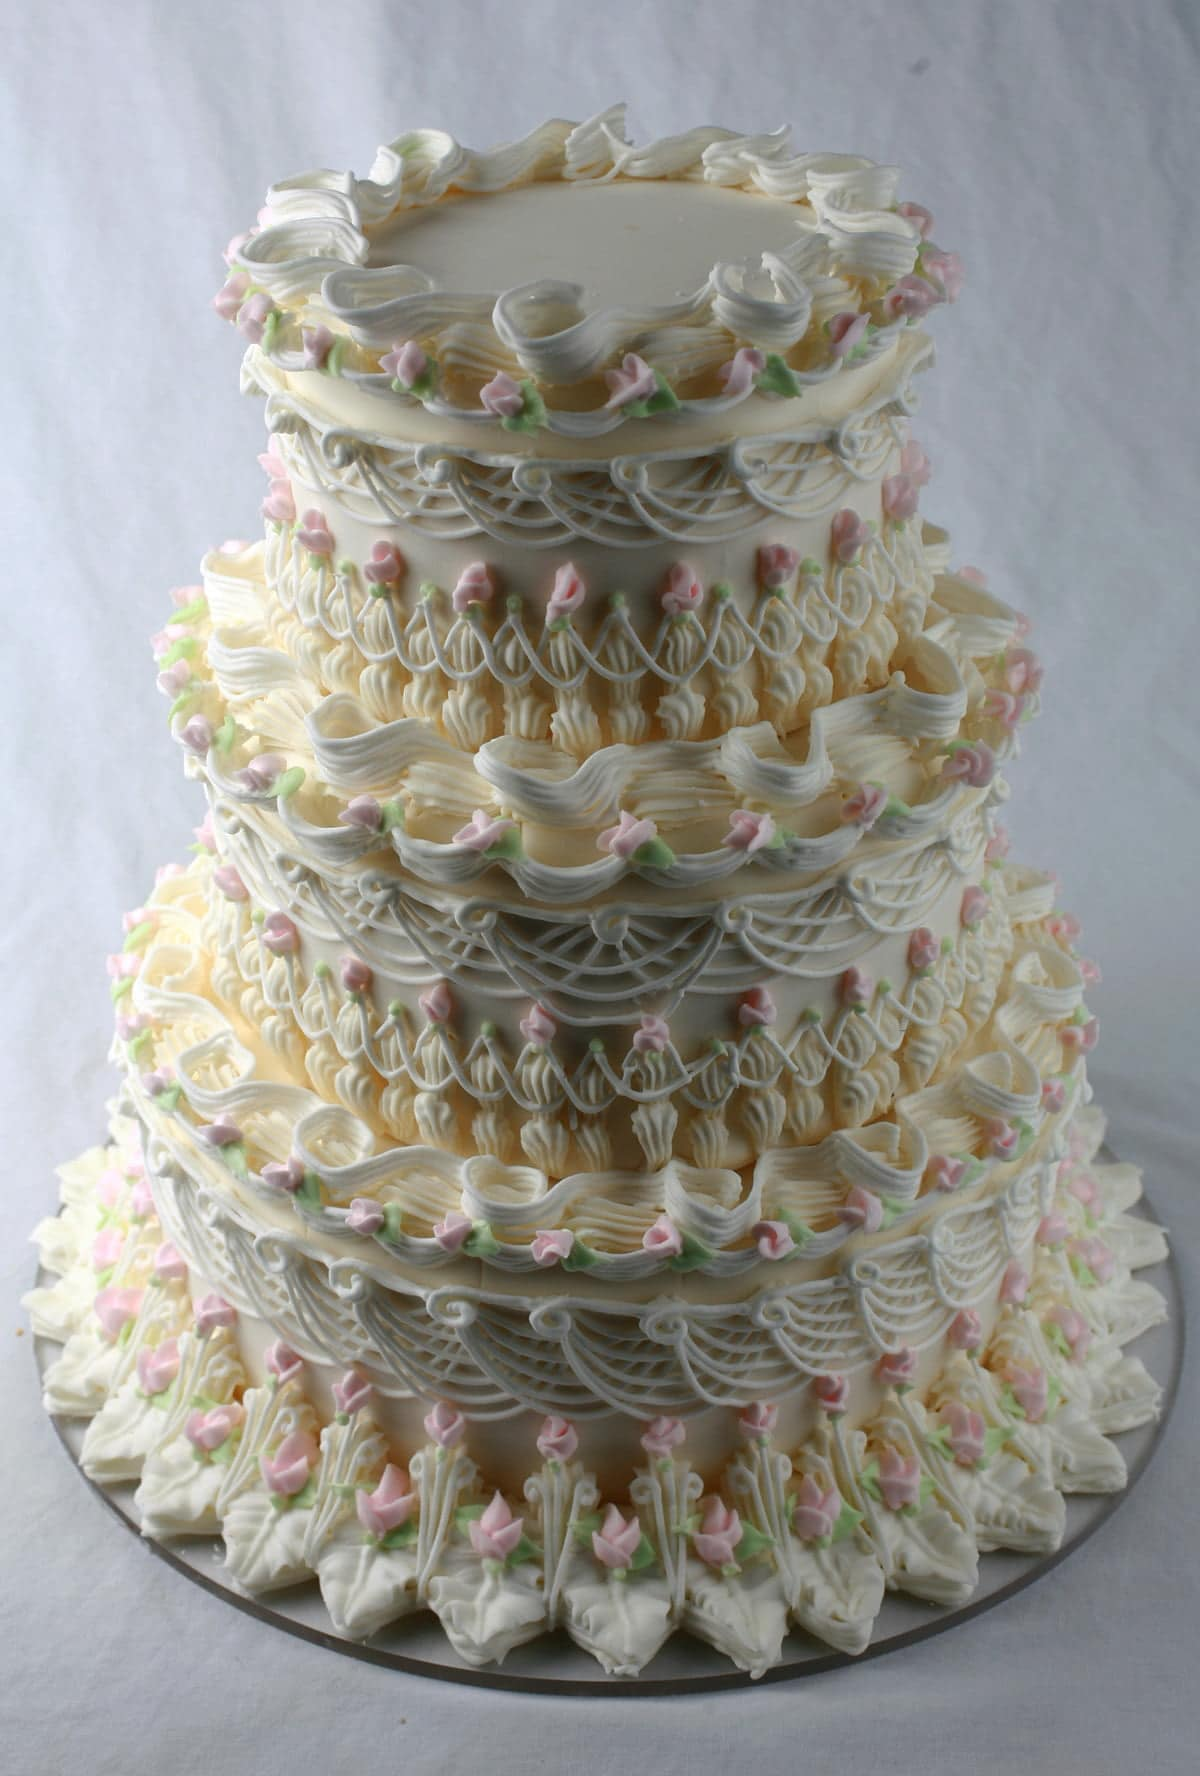 An ornately piped wedding cake, done in the lambeth style. Each layer is adorned with many layers of piping, overpiping, swags, scallops, and more. The cake is mostly white, with pale pink and green accents in the form of rosebuds.